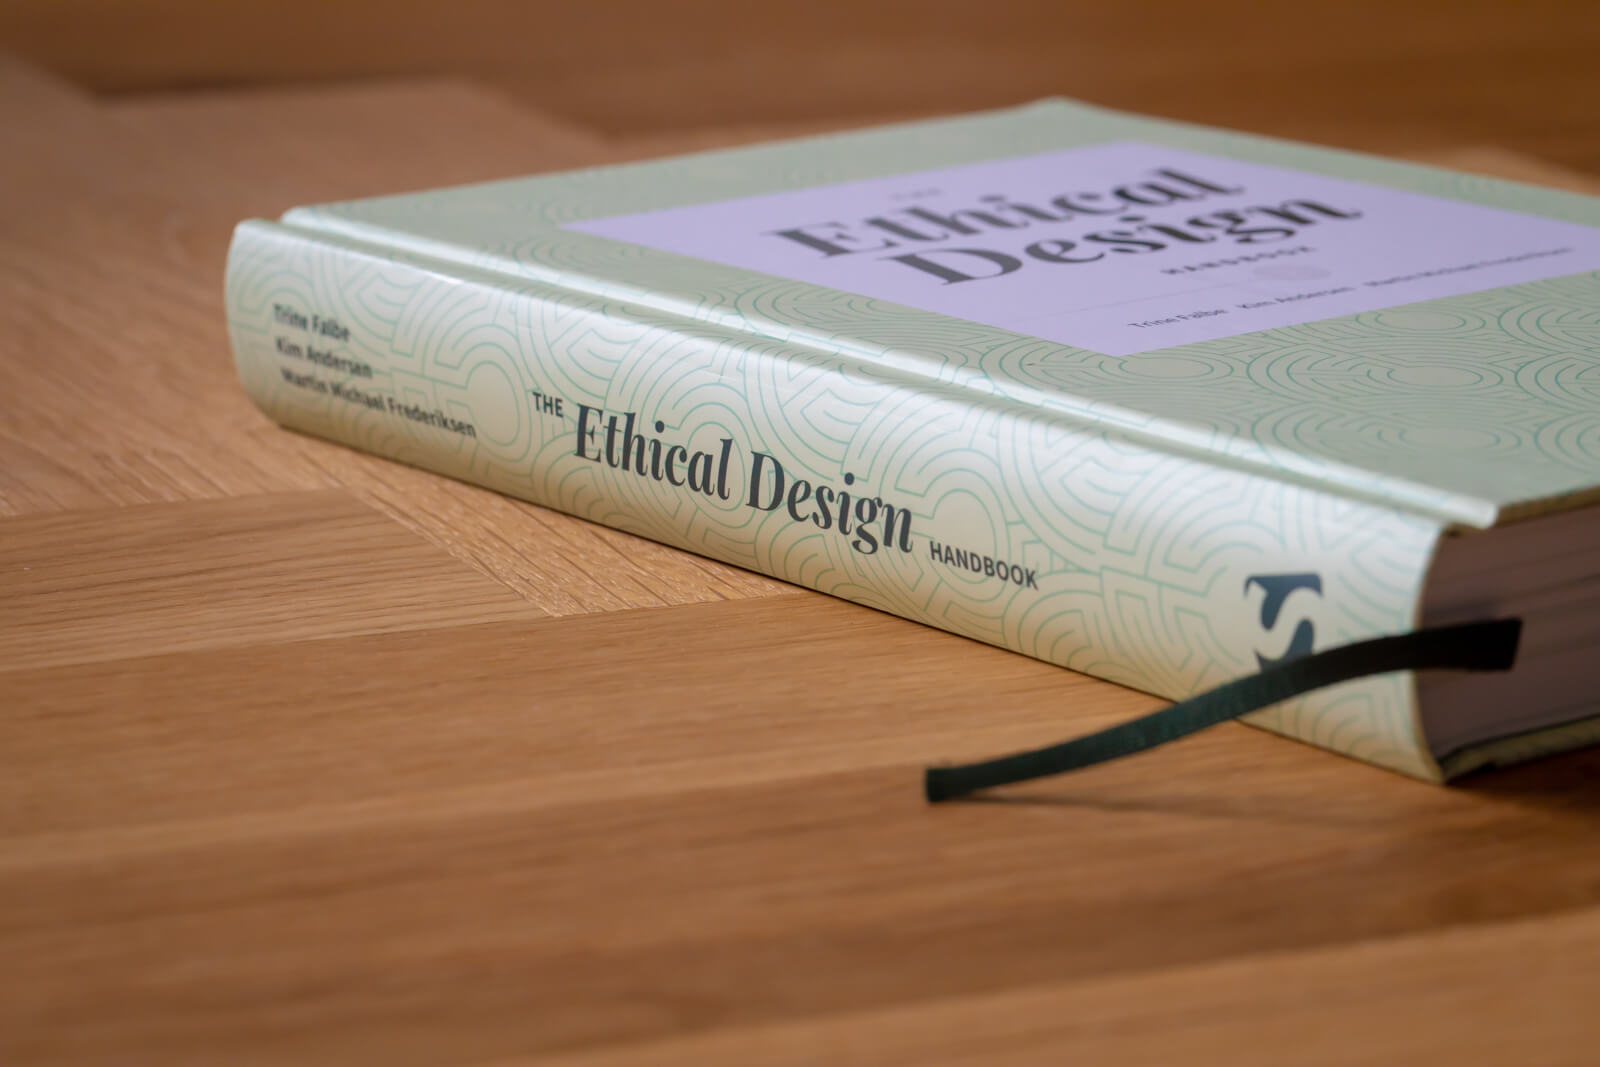 The Ethical Design Handbook.